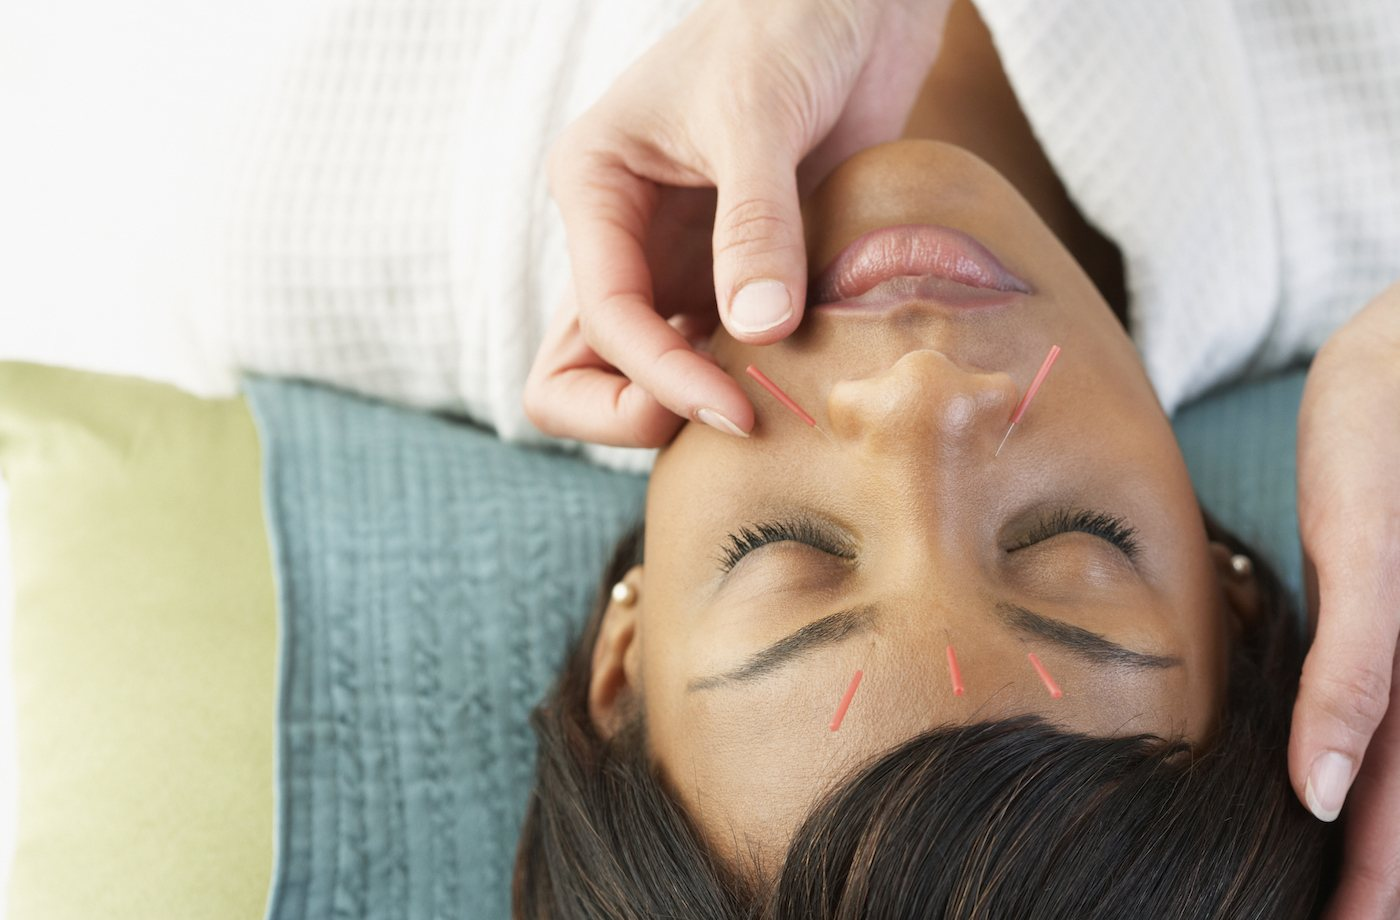 Thumbnail for Curious About Acupuncture? Here's What You Should Know Before Trying It